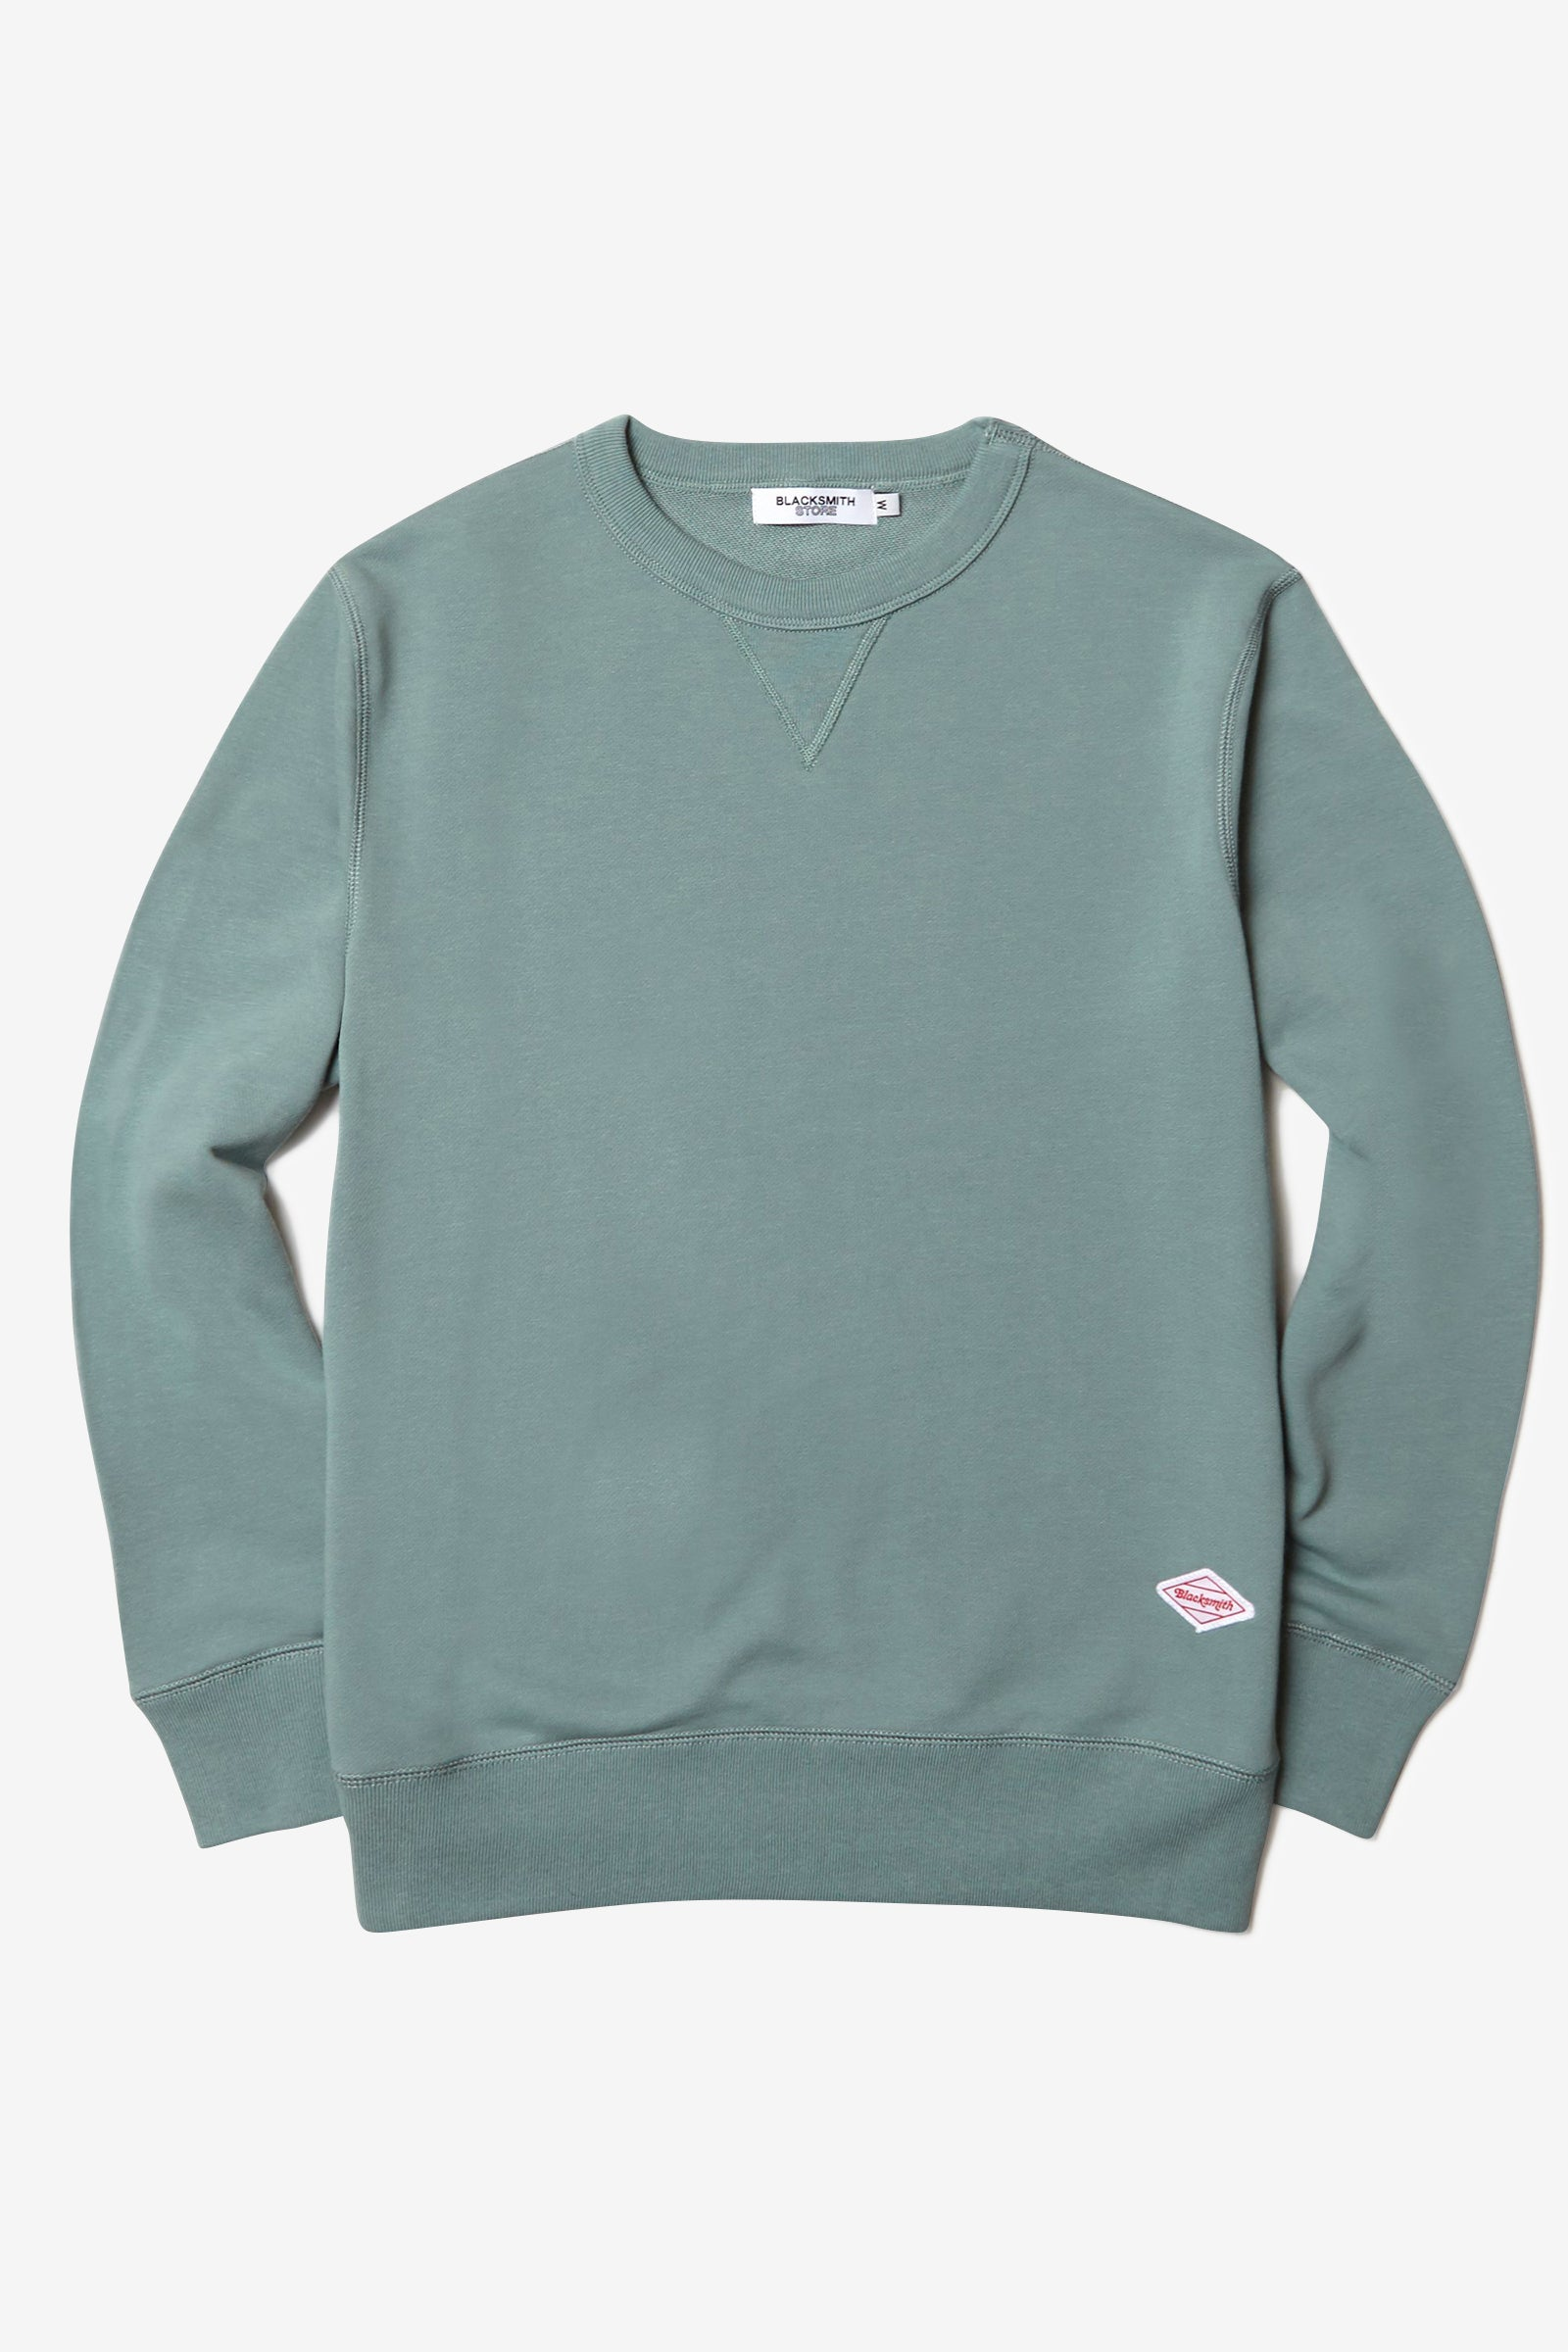 Blacksmith - Loopback Everyday Crewneck - Seafoam